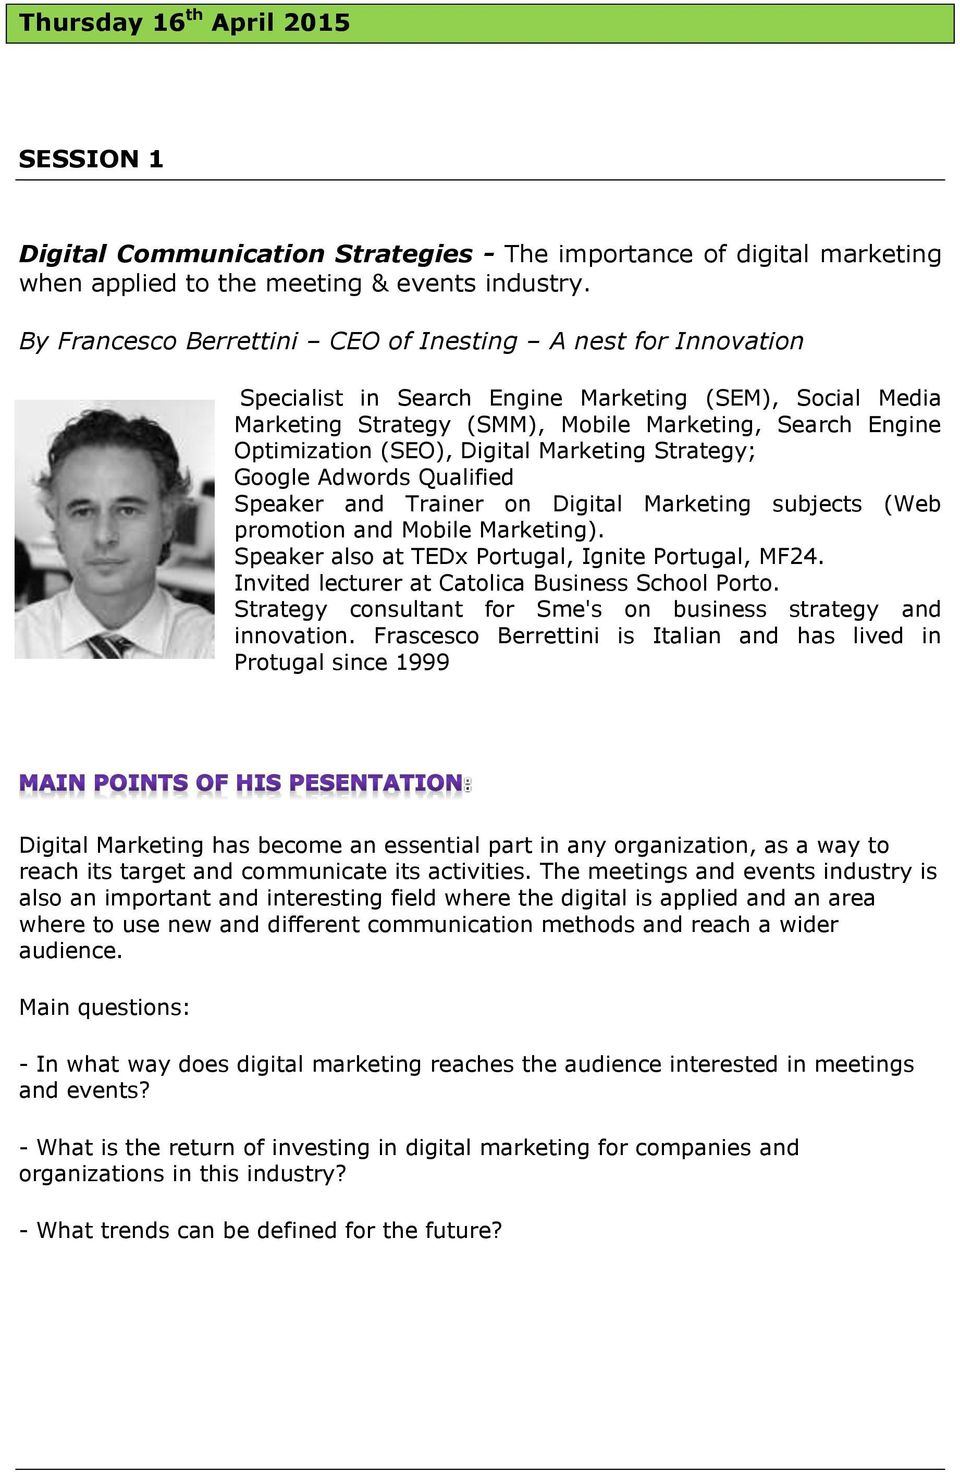 Digital Marketing Strategy; Google Adwords Qualified Speaker and Trainer on Digital Marketing subjects (Web promotion and Mobile Marketing). Speaker also at TEDx Portugal, Ignite Portugal, MF24.